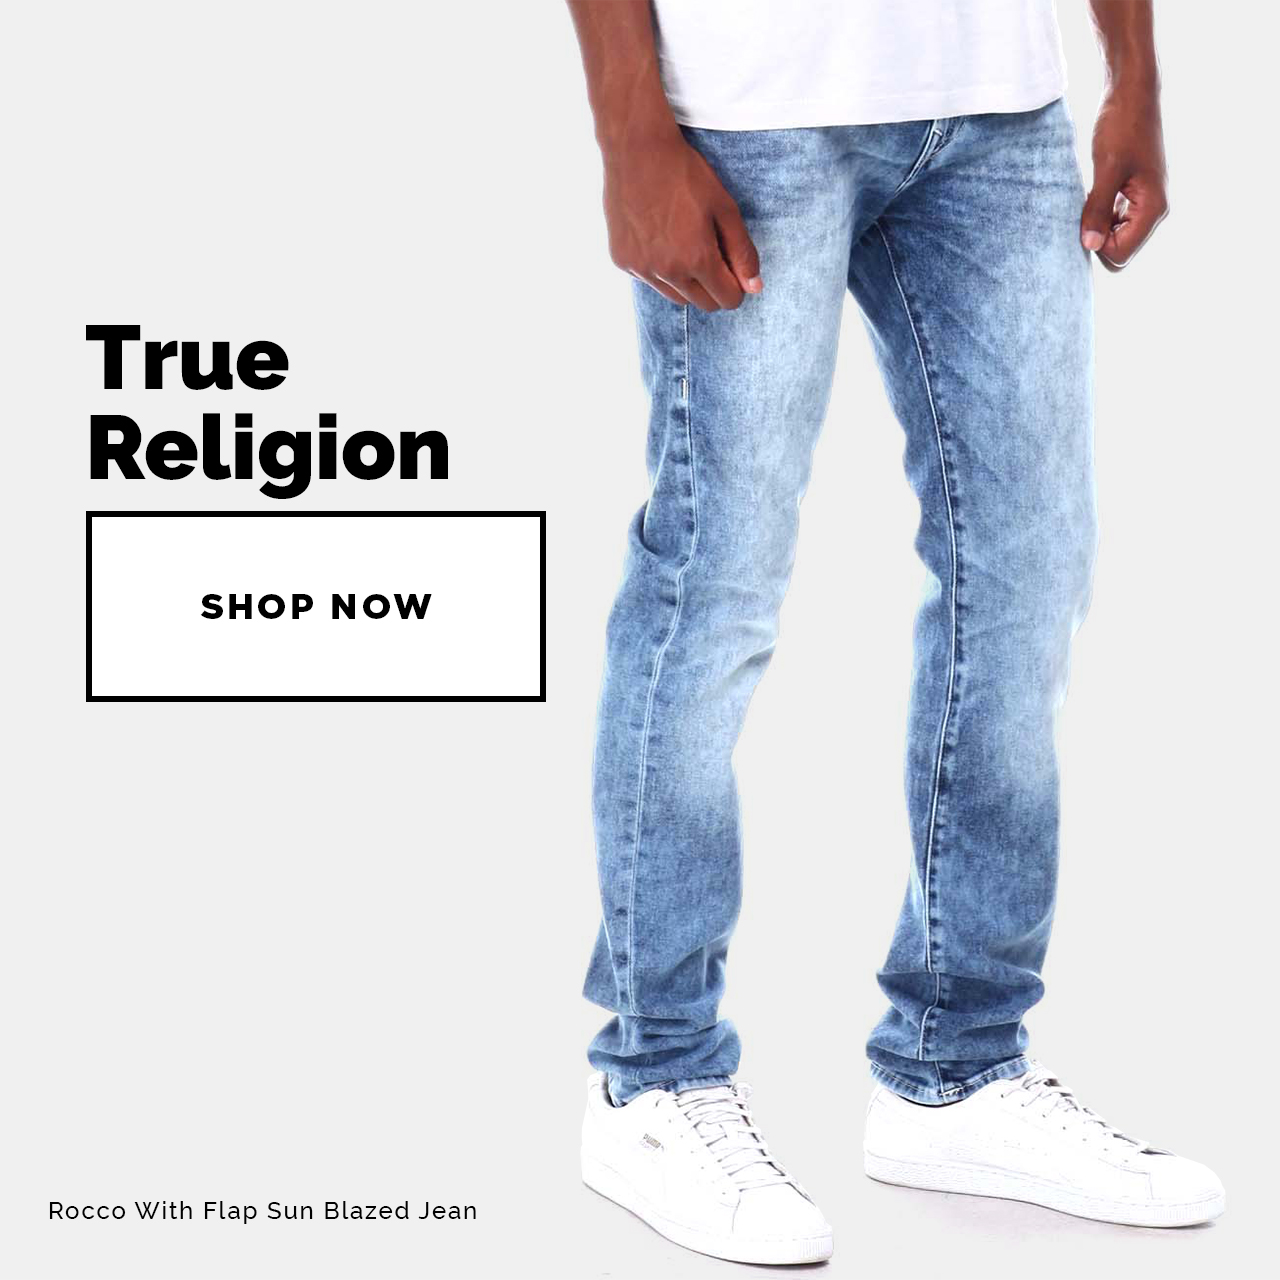 True Religion - Shop Now! Featuring Rocco With Flap Sun Blazed Jean